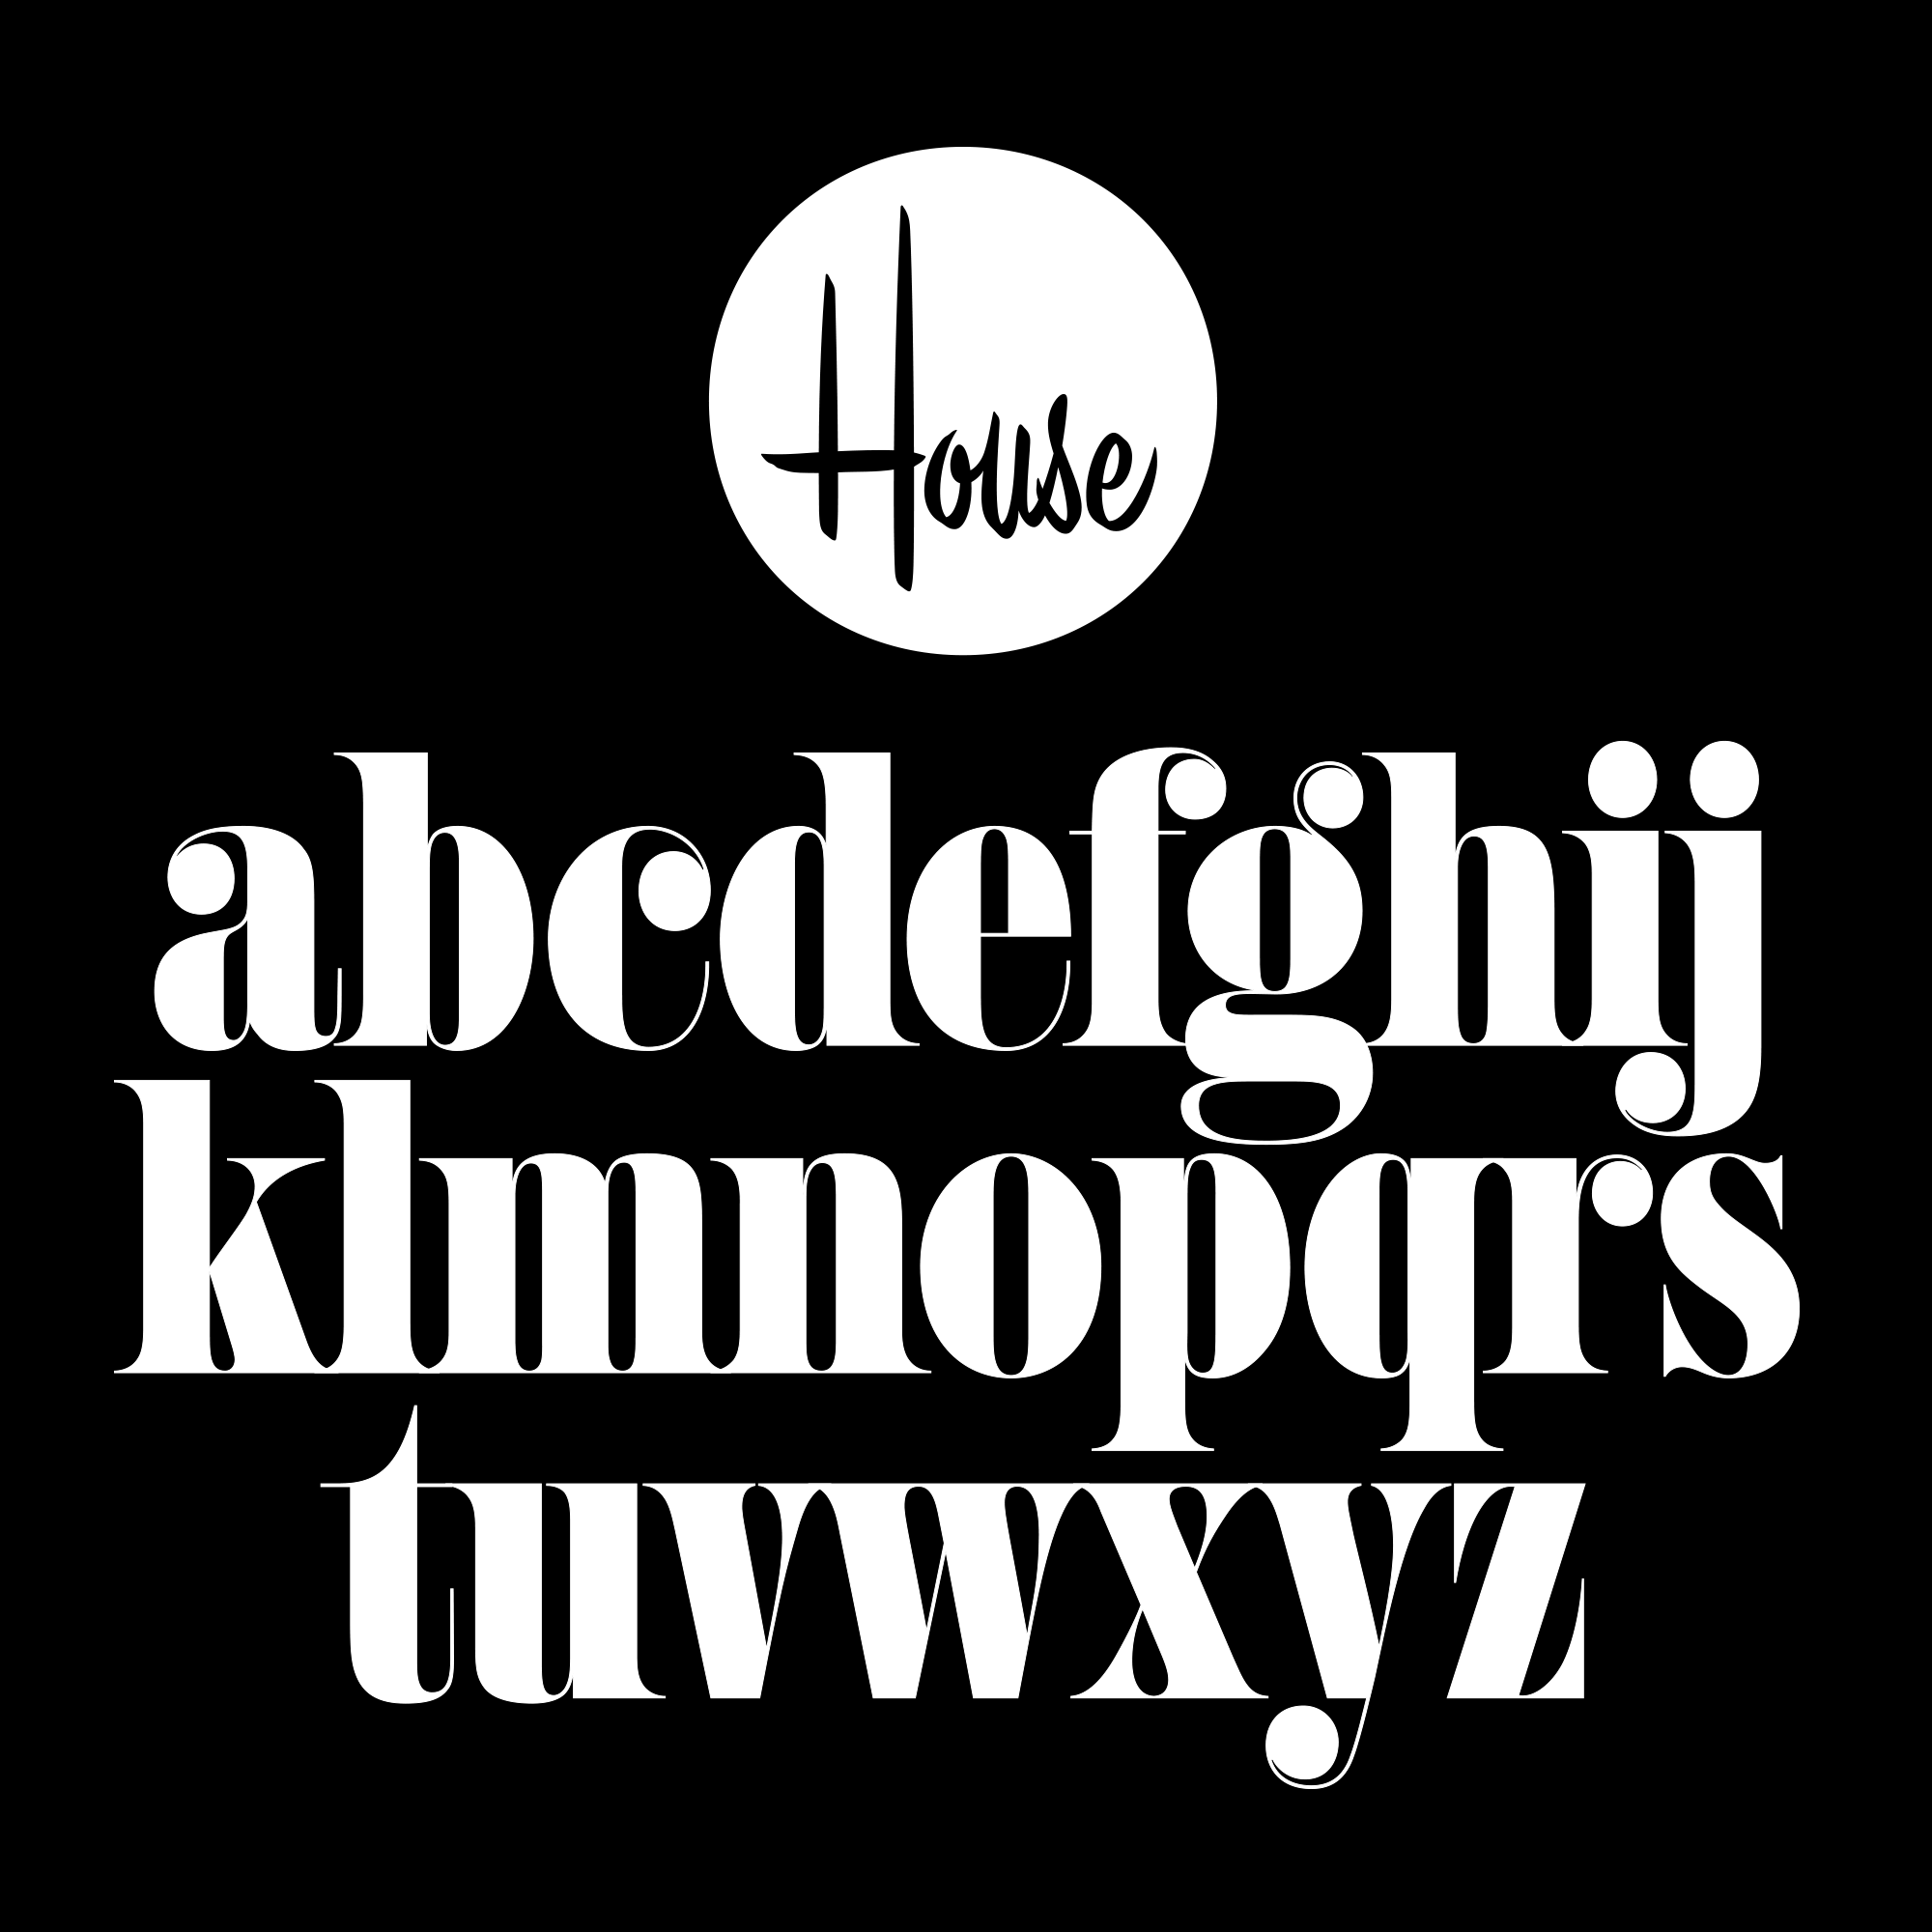 House Montage fonts